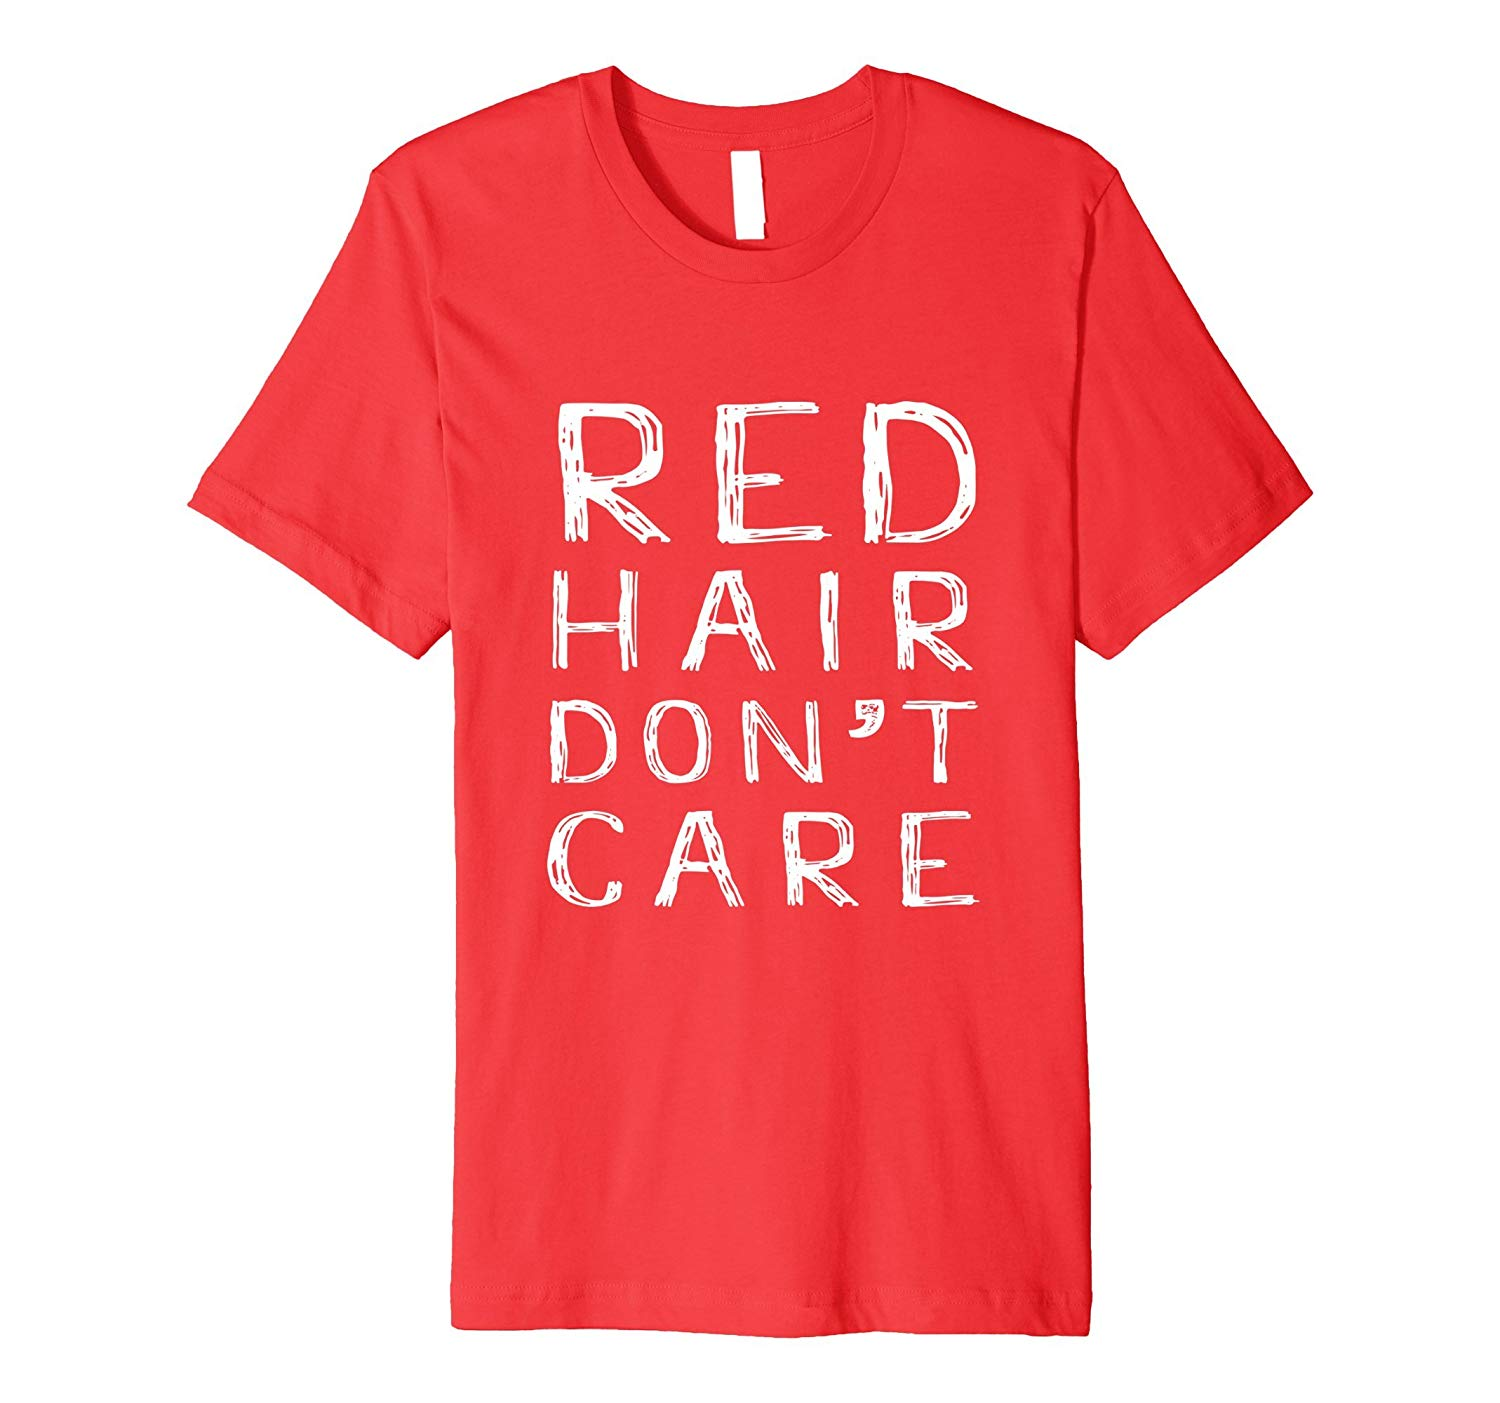 Red hair don't care tee shirt